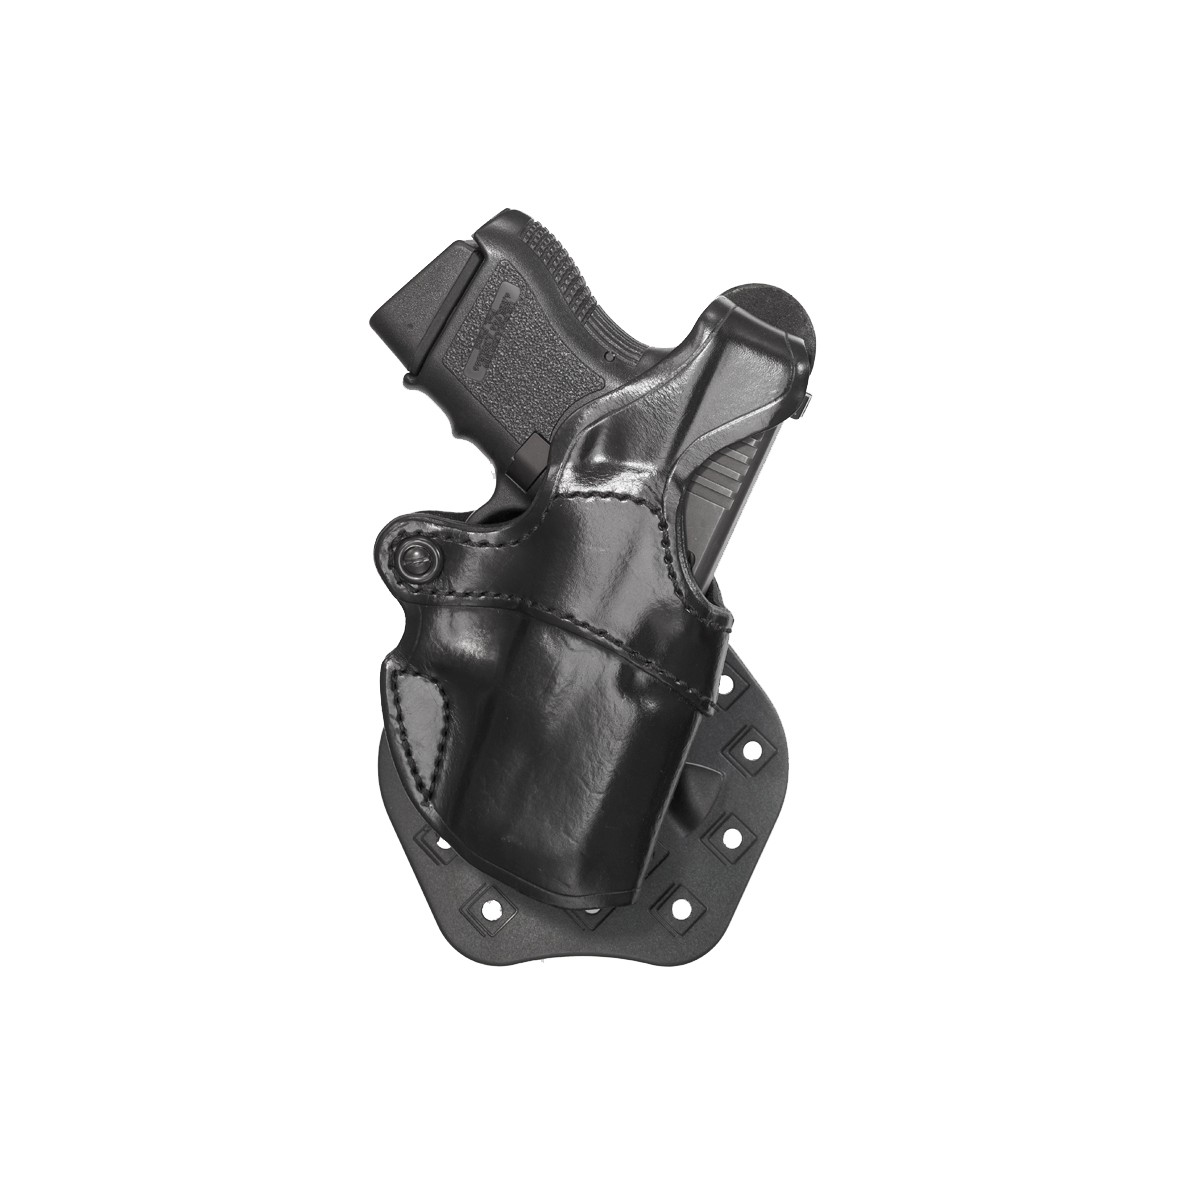 D.A.™ Paddle Holster Model: 144